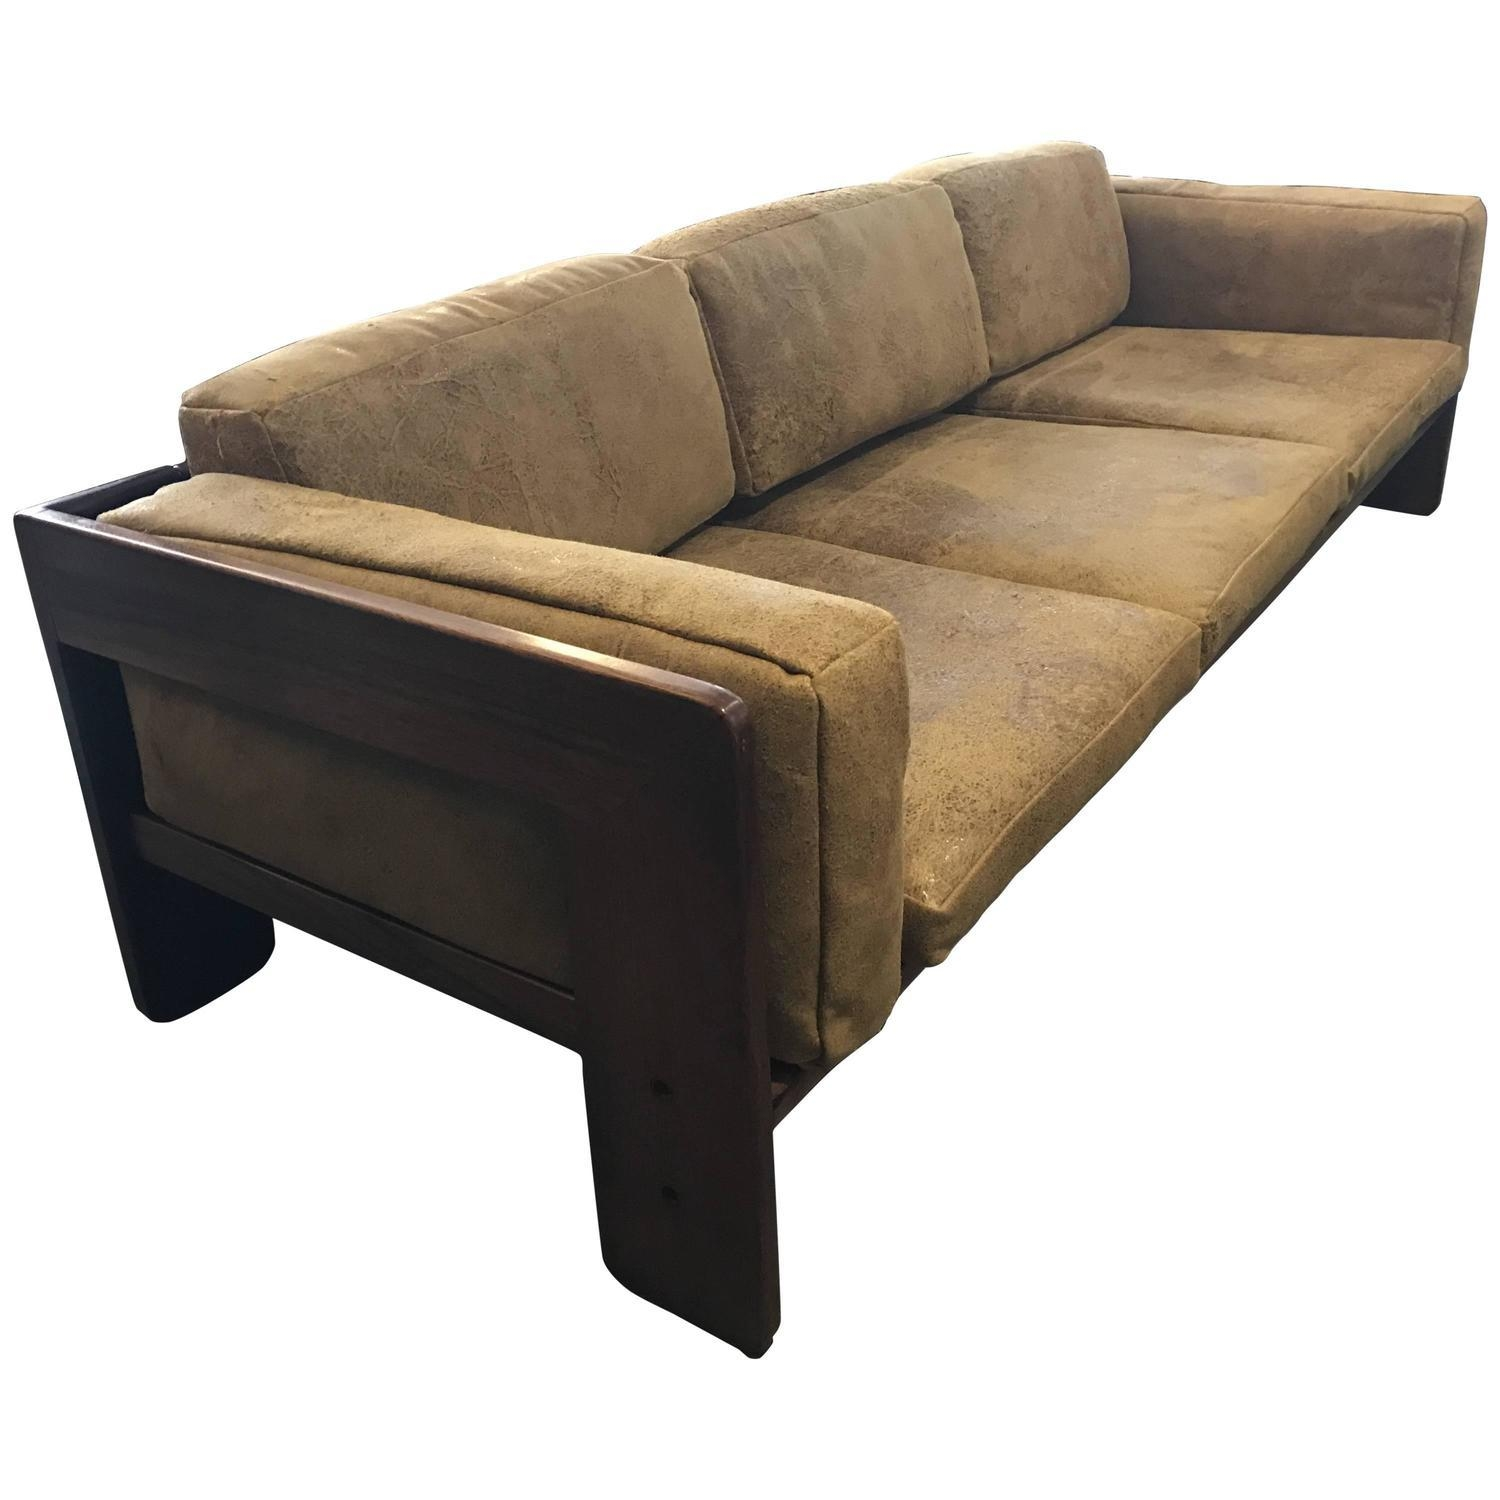 Tobia Scarpa Knoll Bastiano Rosewood Sofa Vintage Leather Cushions Pertaining To Knoll Sofas (View 16 of 20)